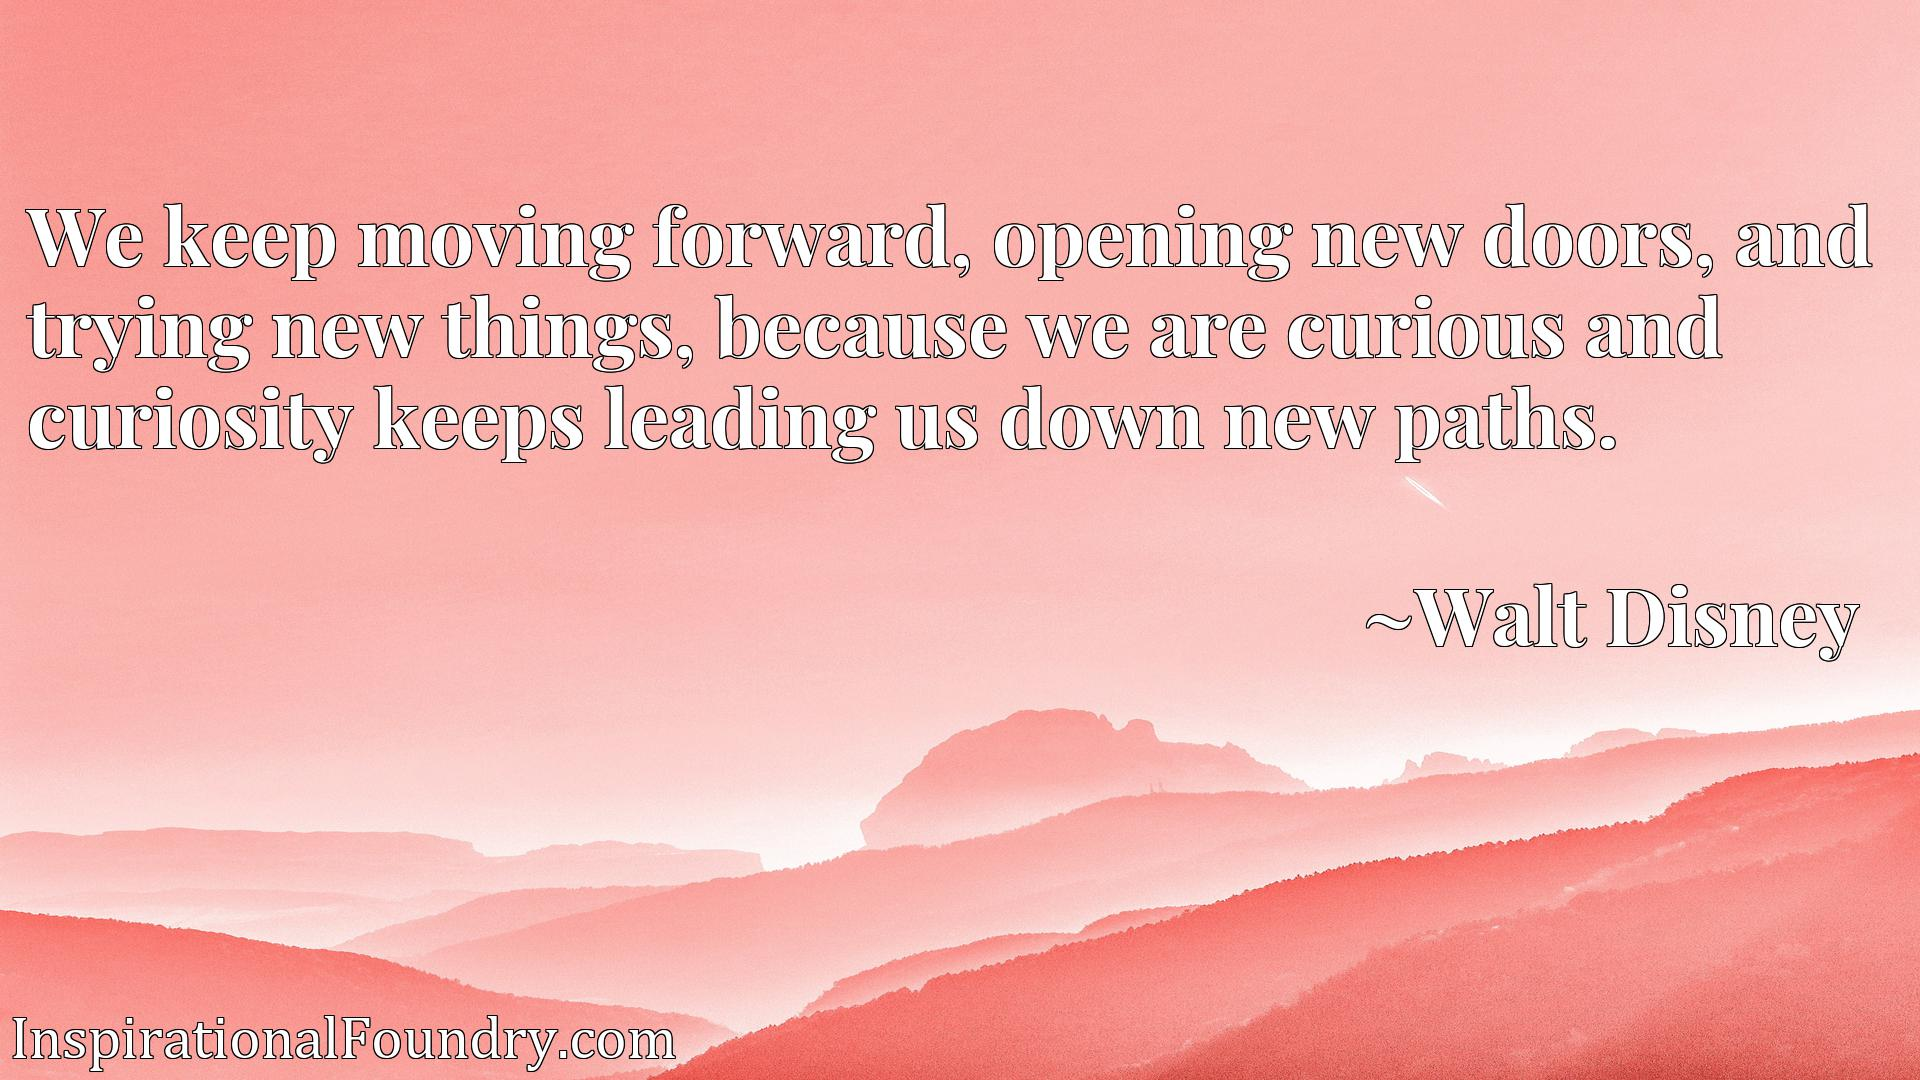 We keep moving forward, opening new doors, and trying new things, because we are curious and curiosity keeps leading us down new paths.